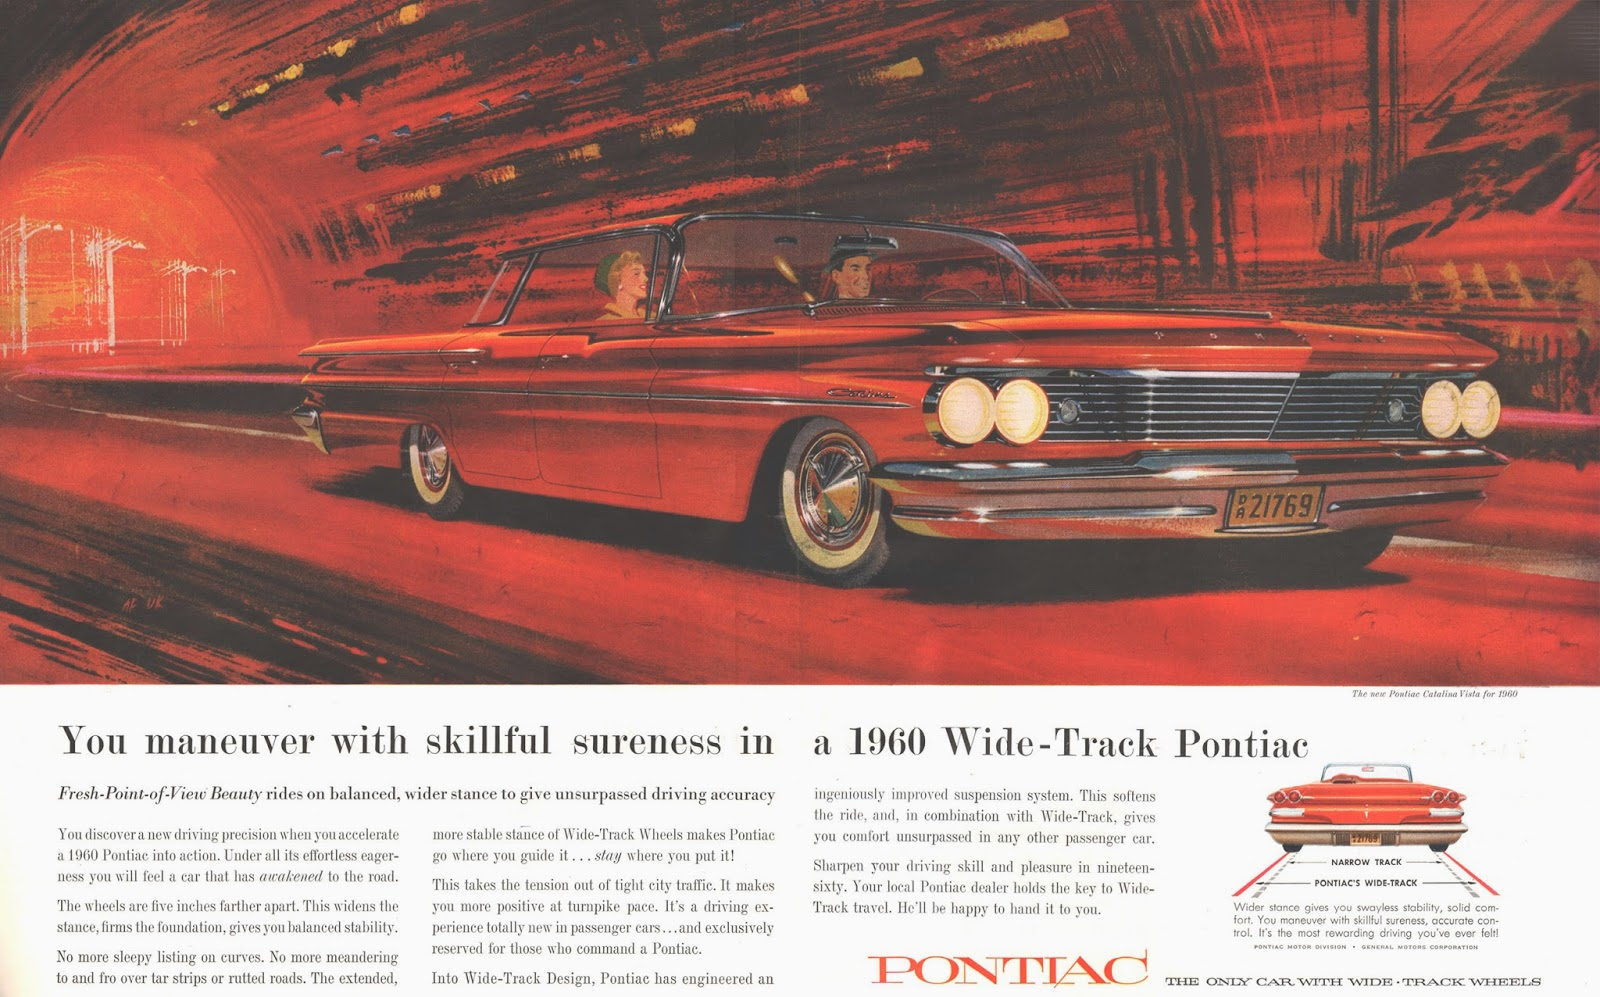 1960 Pontiac Catalina Vista